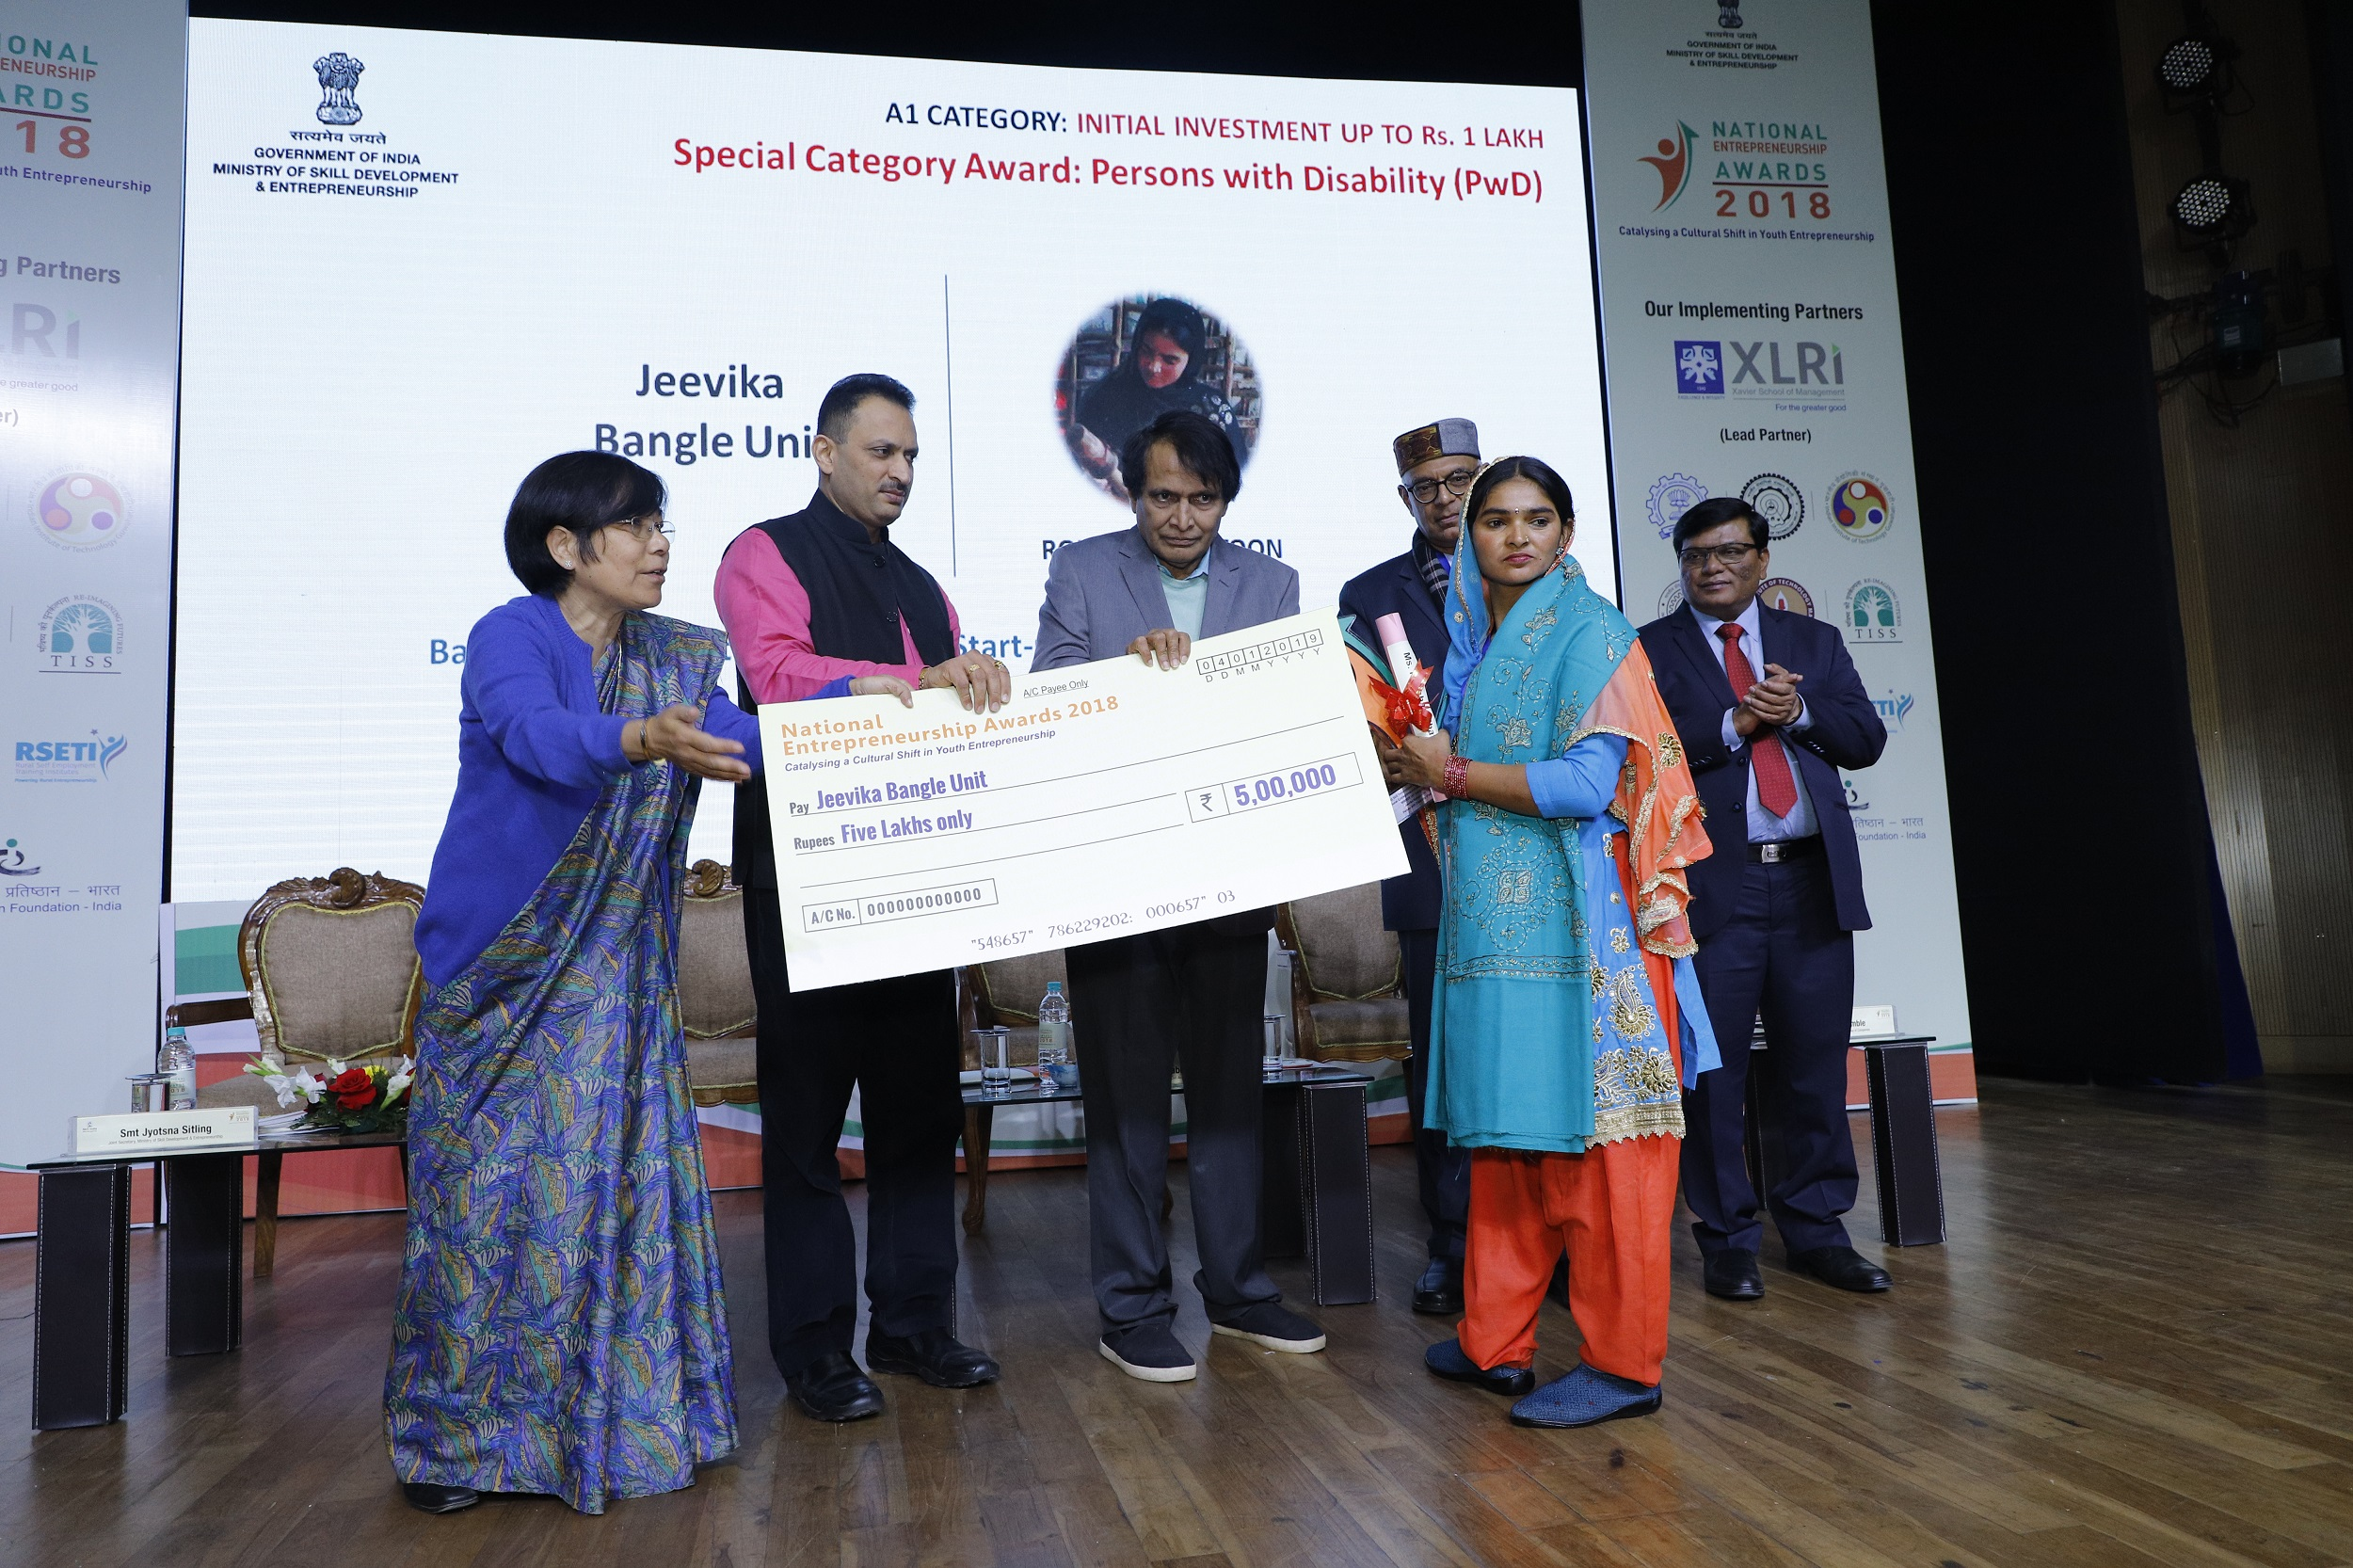 Entrepreneurs and Startups Felicitated at National Entrepreneurship Awards 2018